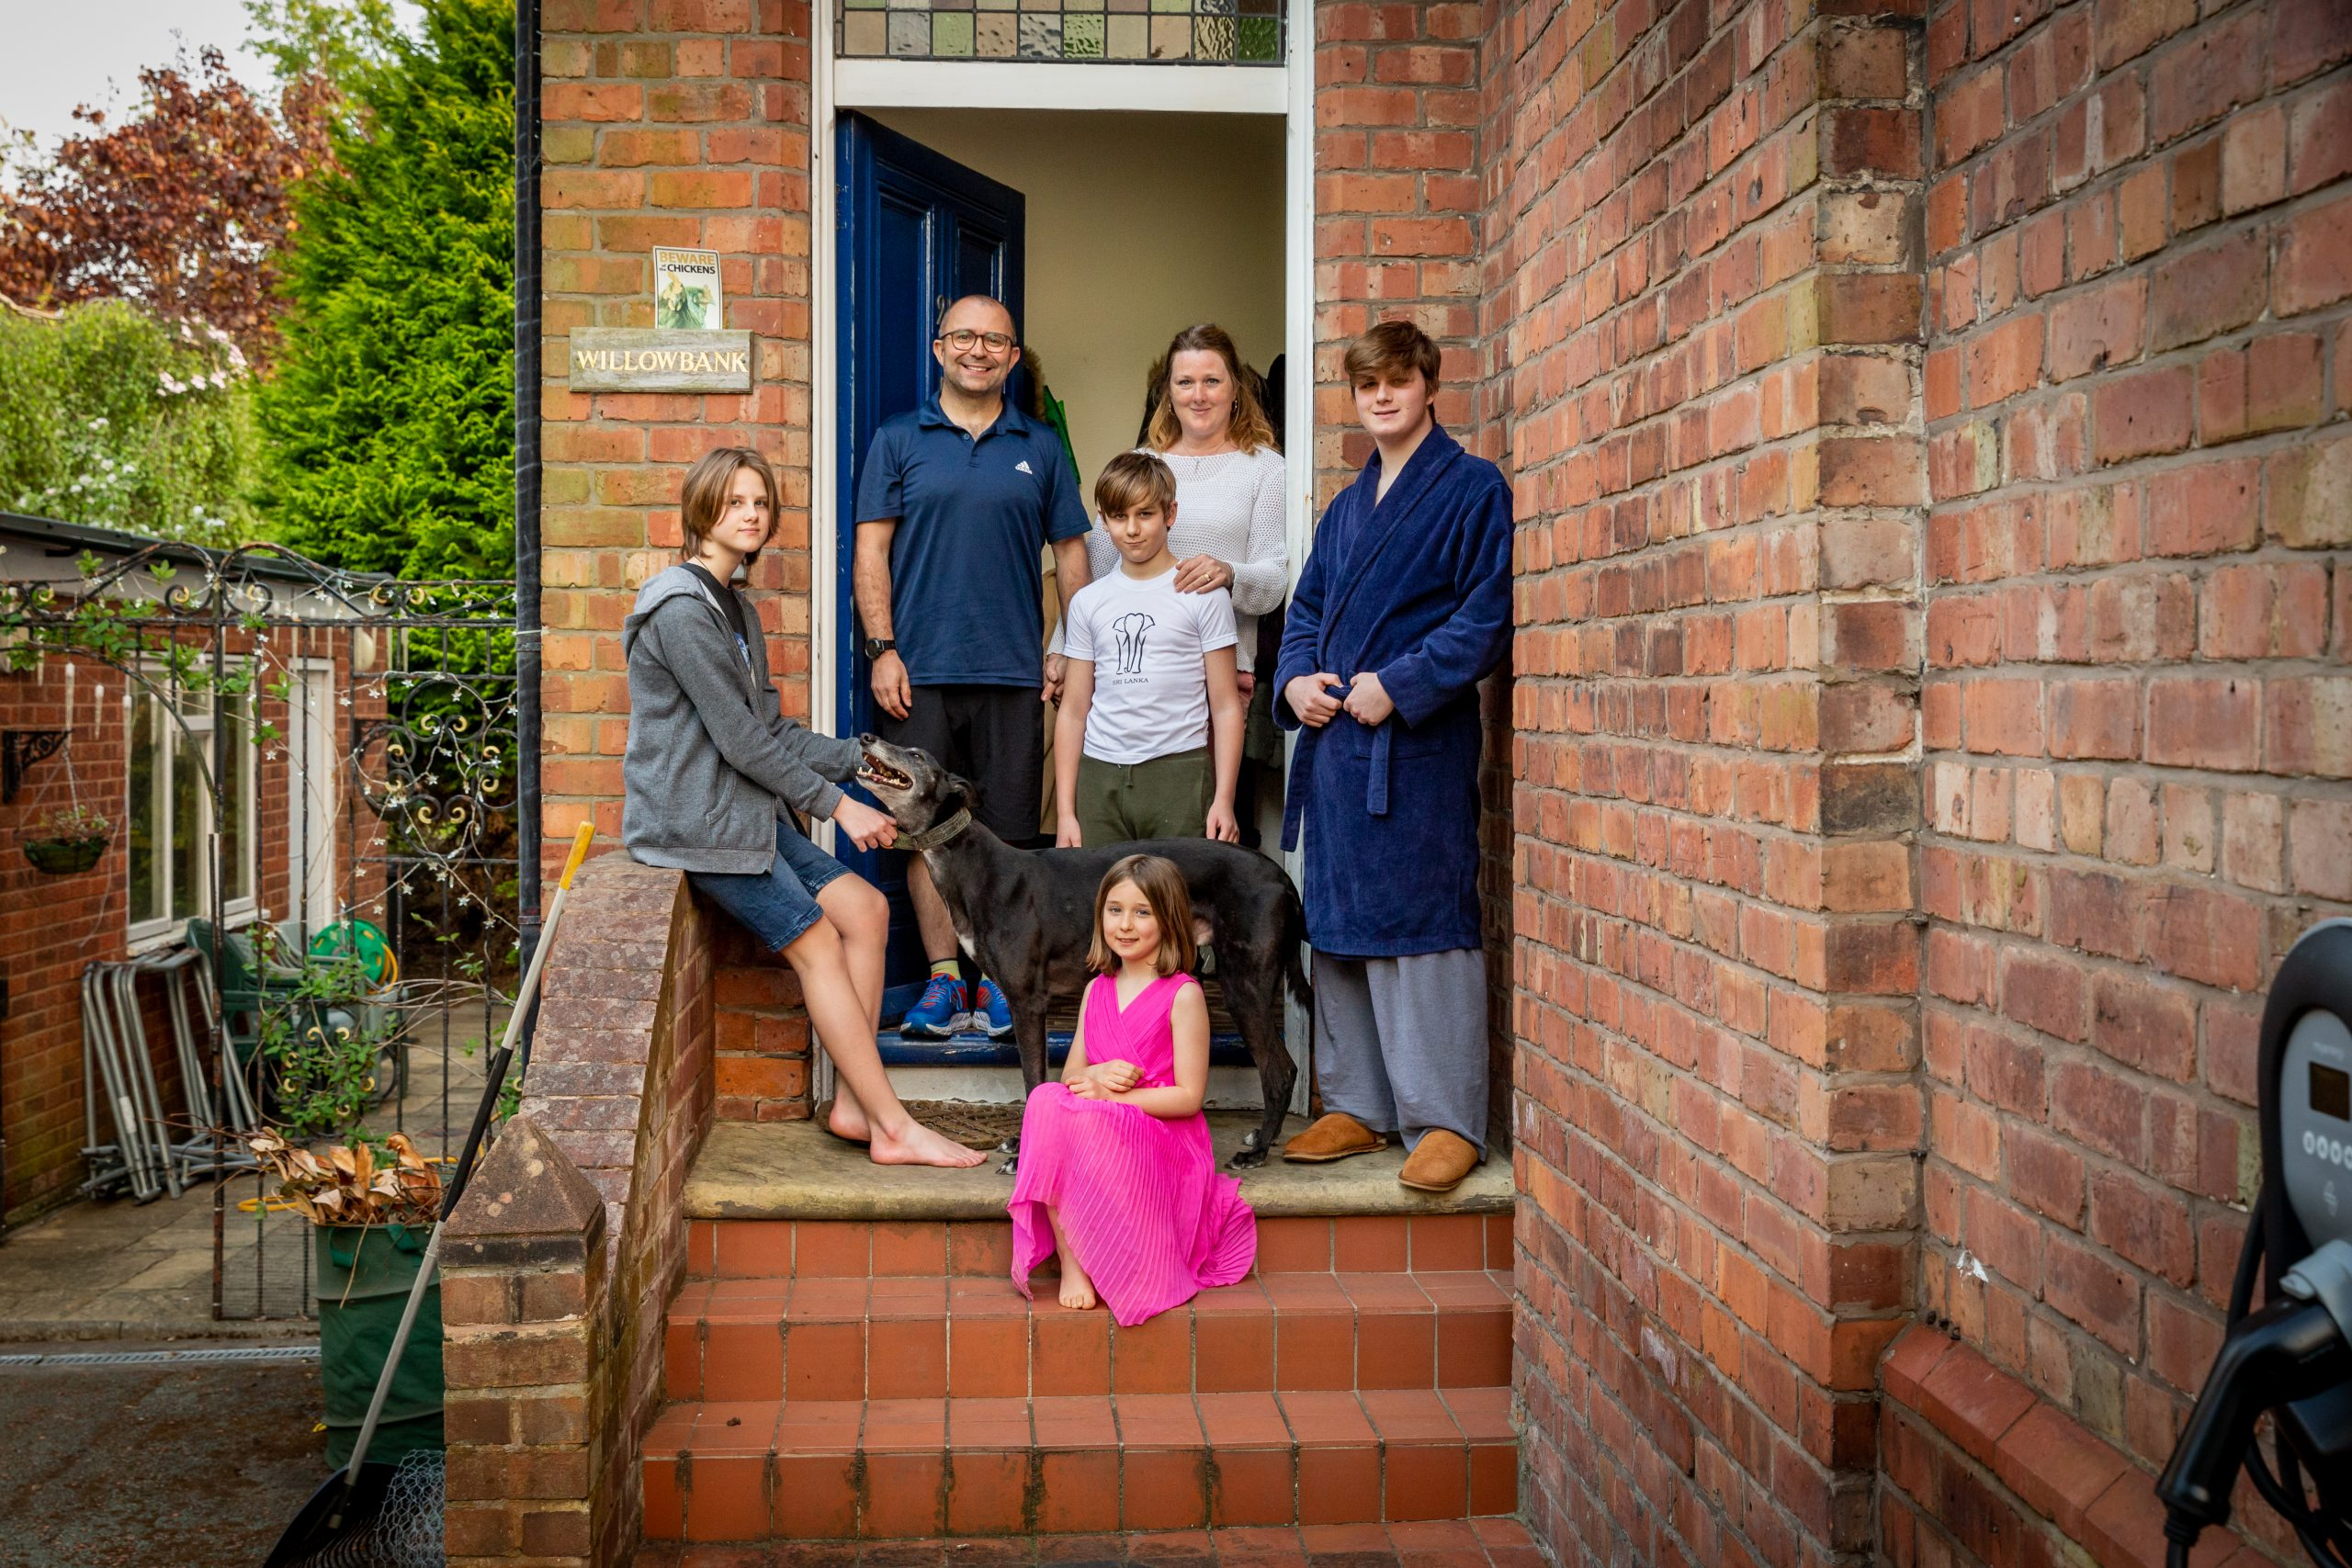 Doorstep Portraits during the Covid-19 Lockdown